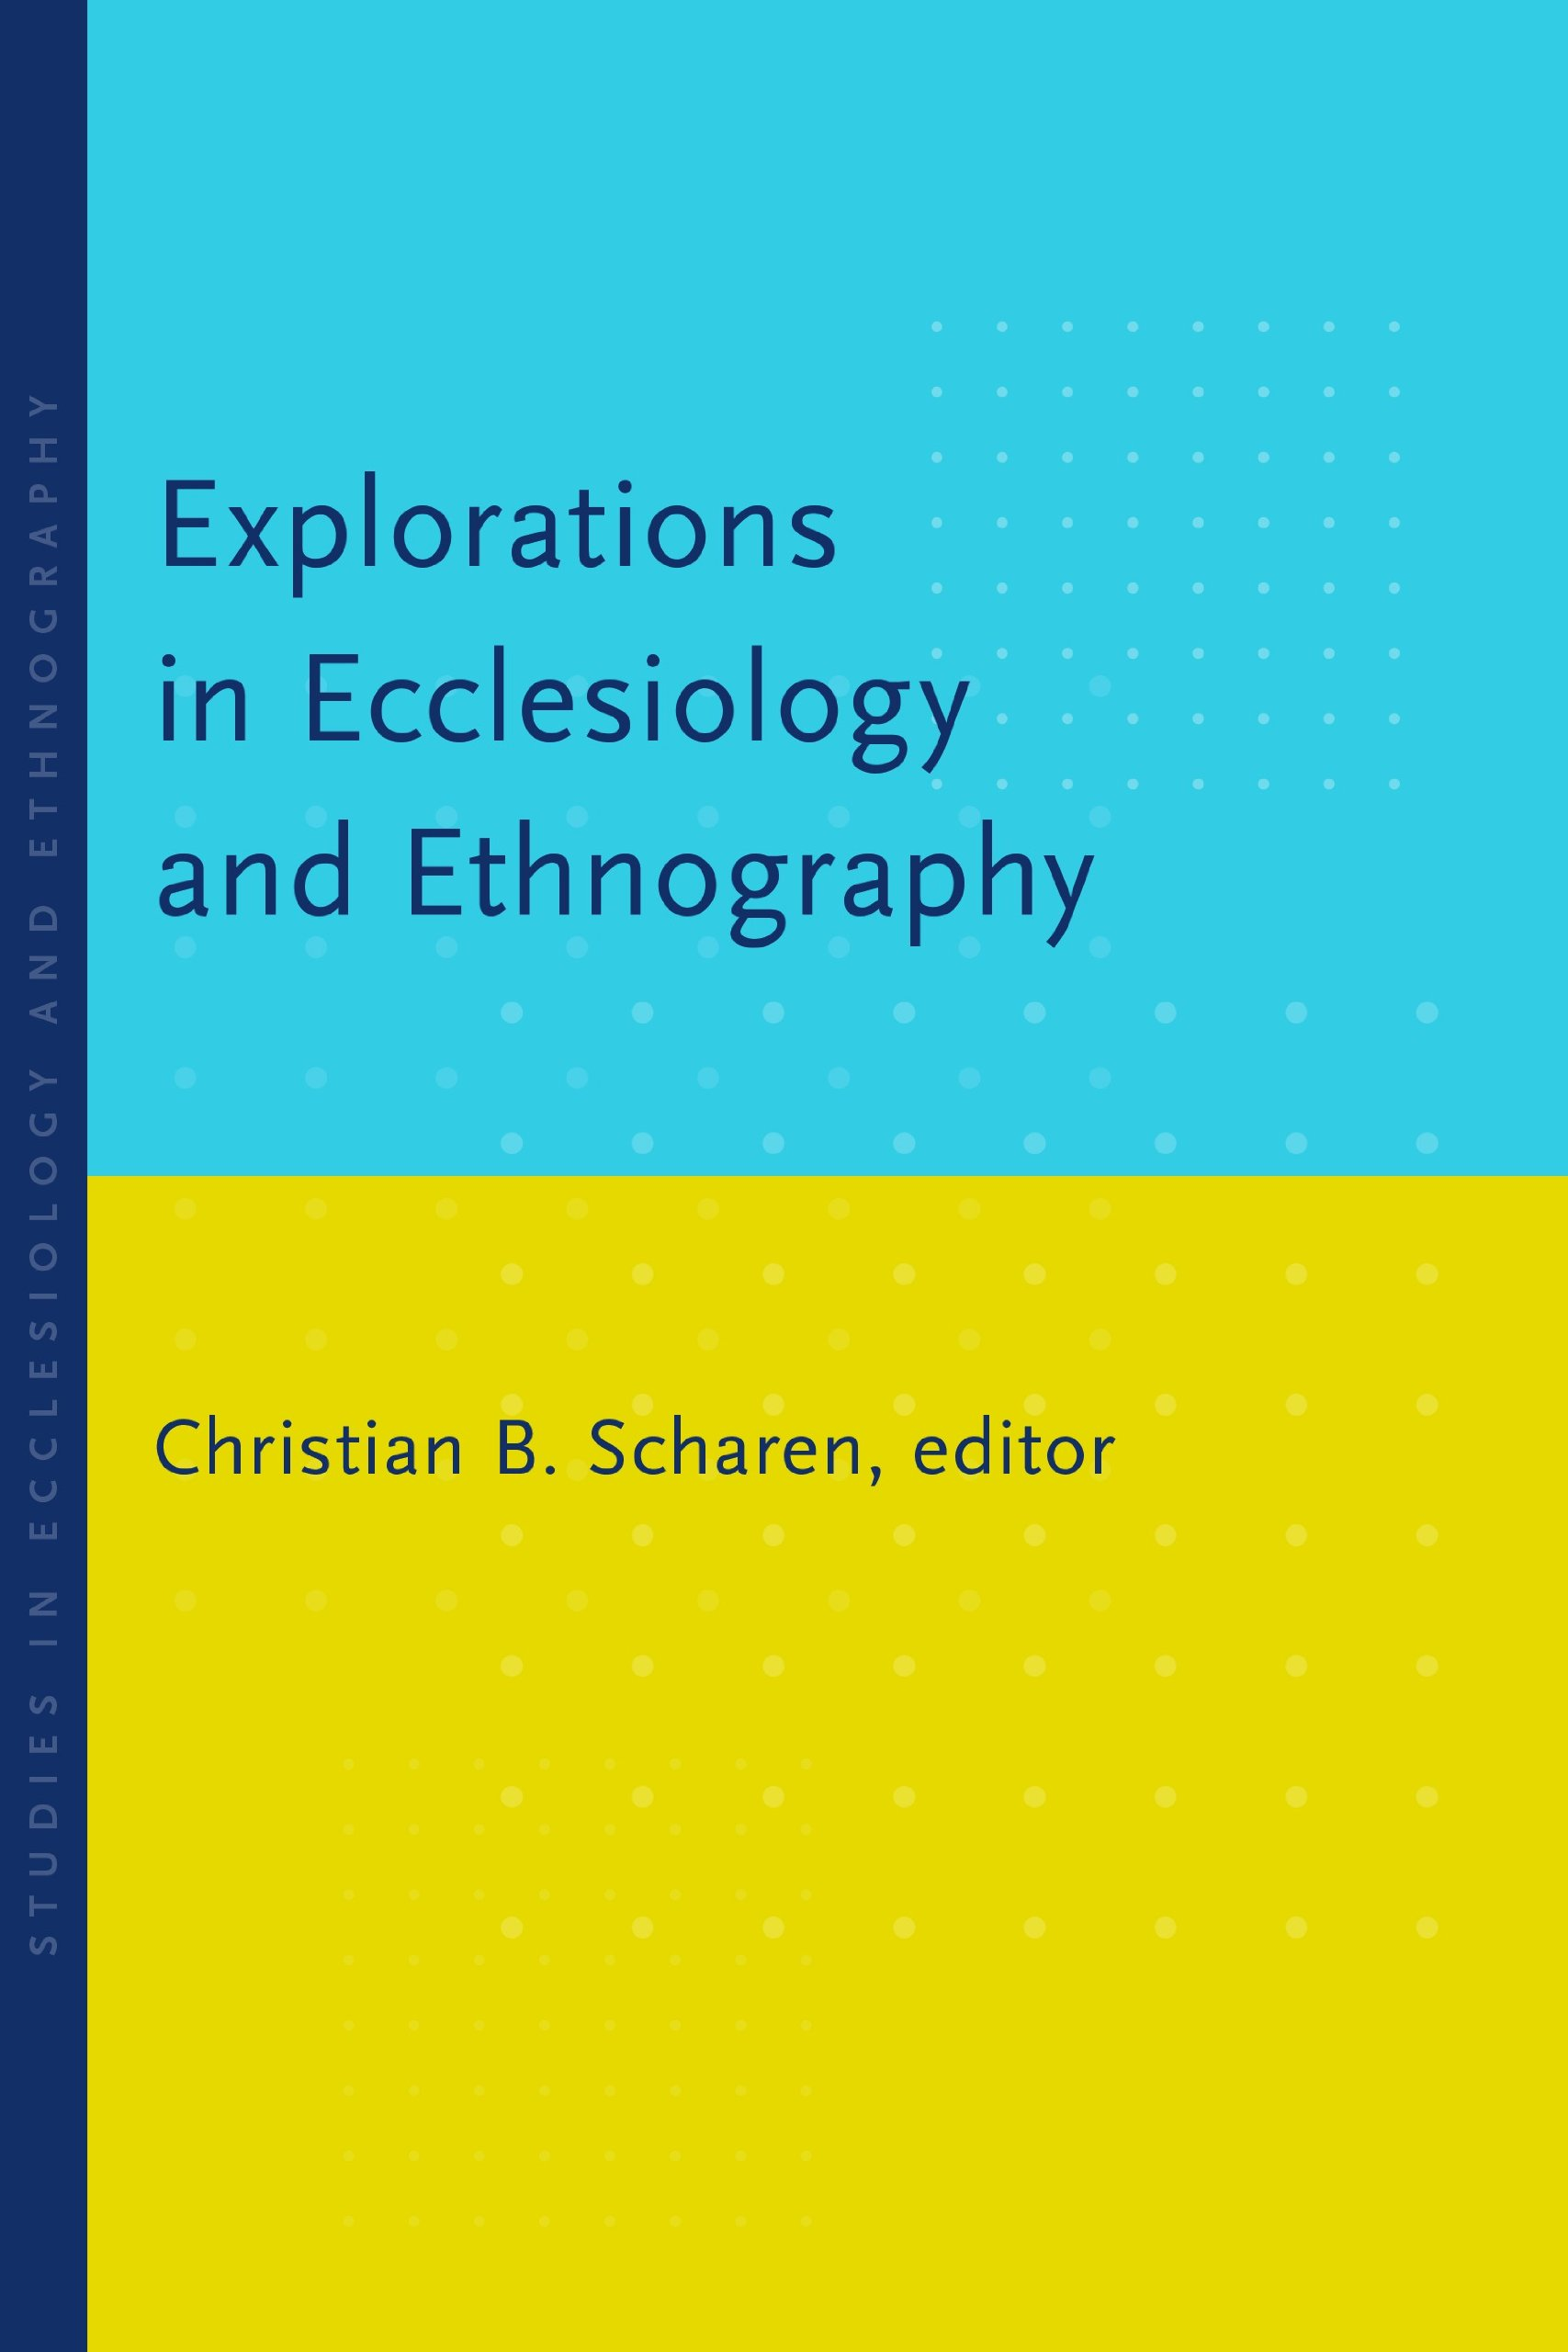 explorations in ecc and ethno.jpg